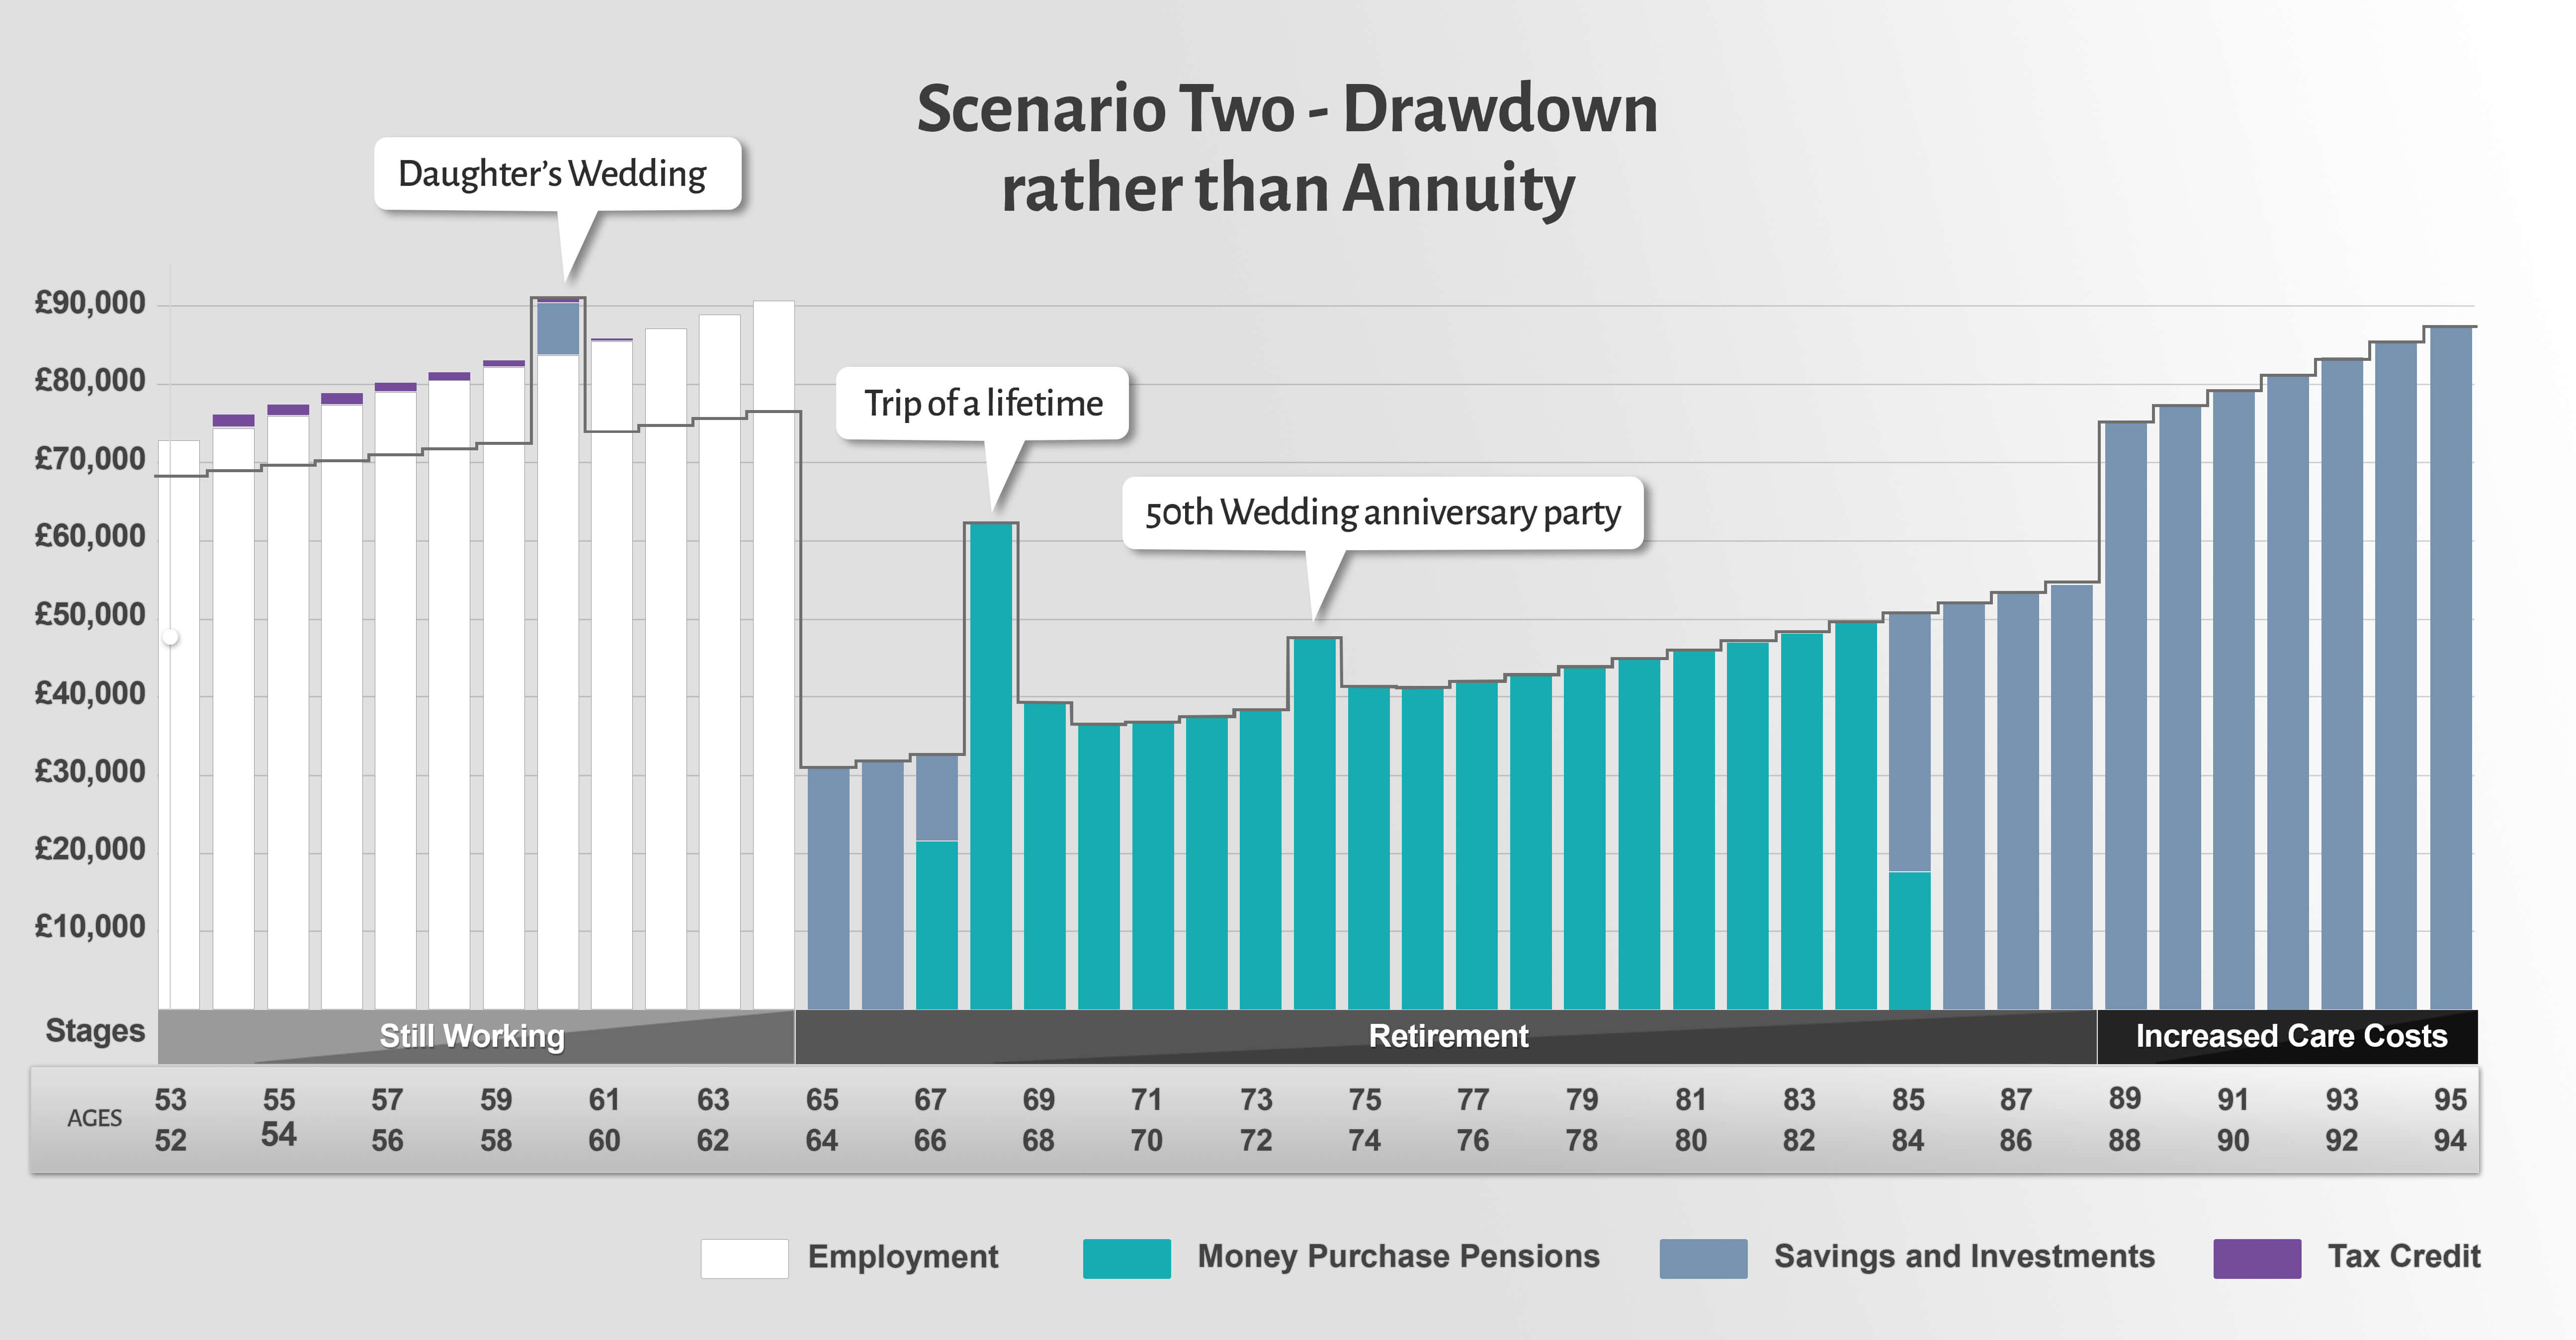 Choosing drawdown over an annuity